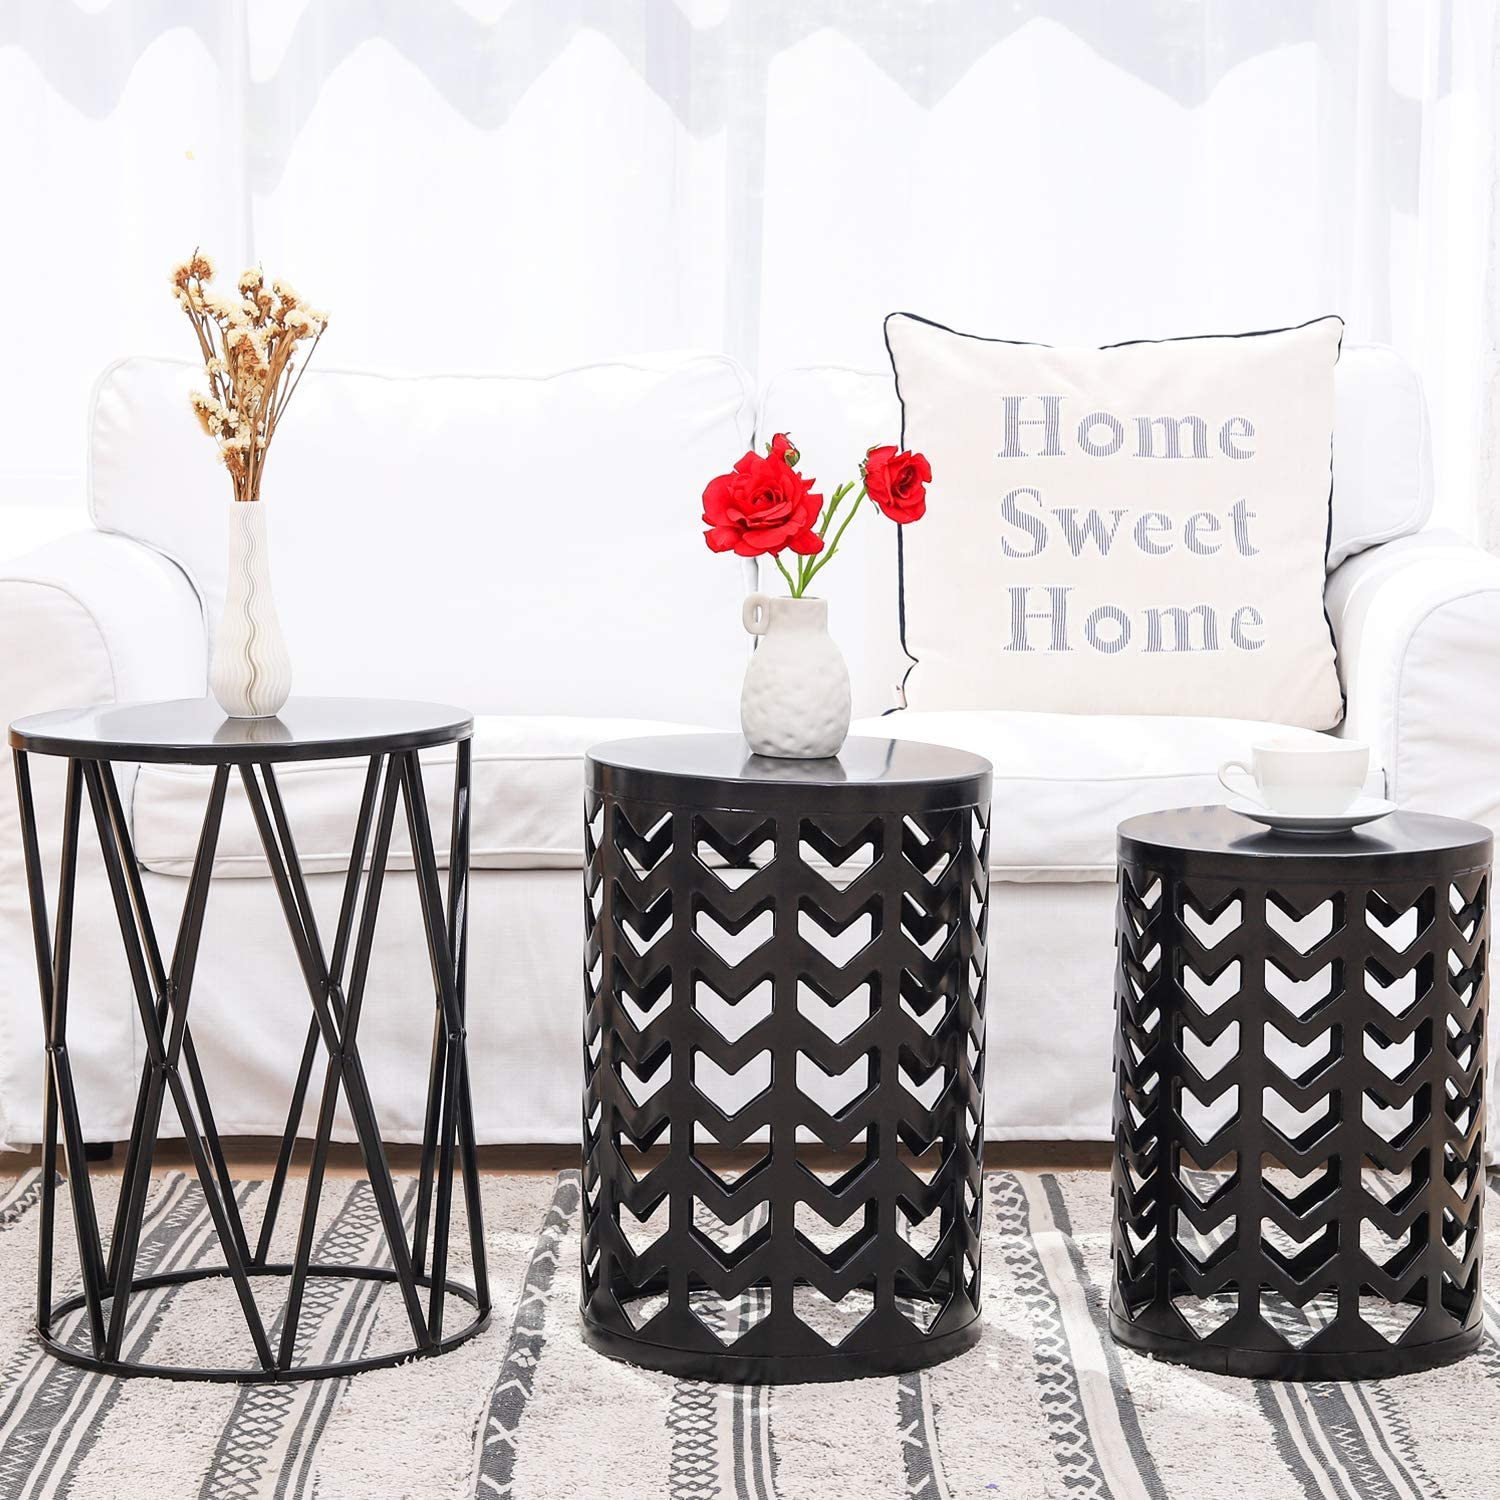 Nesting Round Metal Indoor Coffee End Tables, Set of 3 Modern Farmhouse Nightstands Decor Sofa Side Tables Plant Stand for Living Room Balcony Home Garden Stool Patio Outdoor- Black (Ship from US)